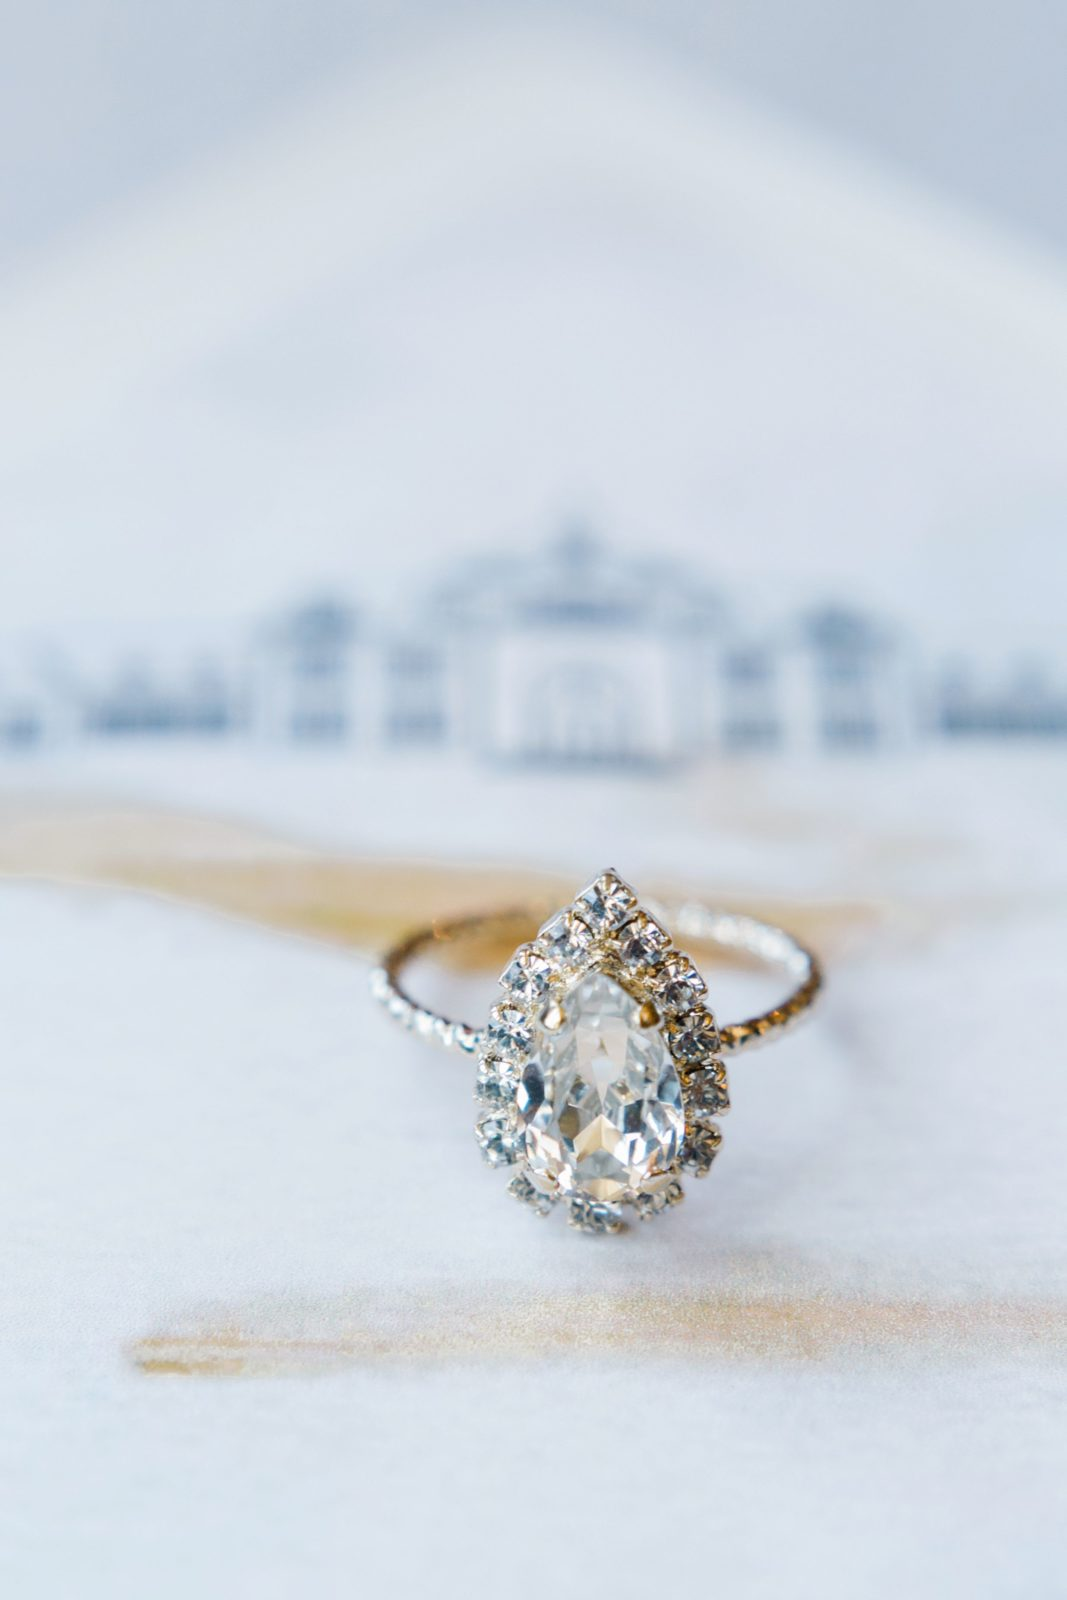 Tear drop wedding ring: Sophisticated and Chic wedding inspiration on Alexa Kay Events